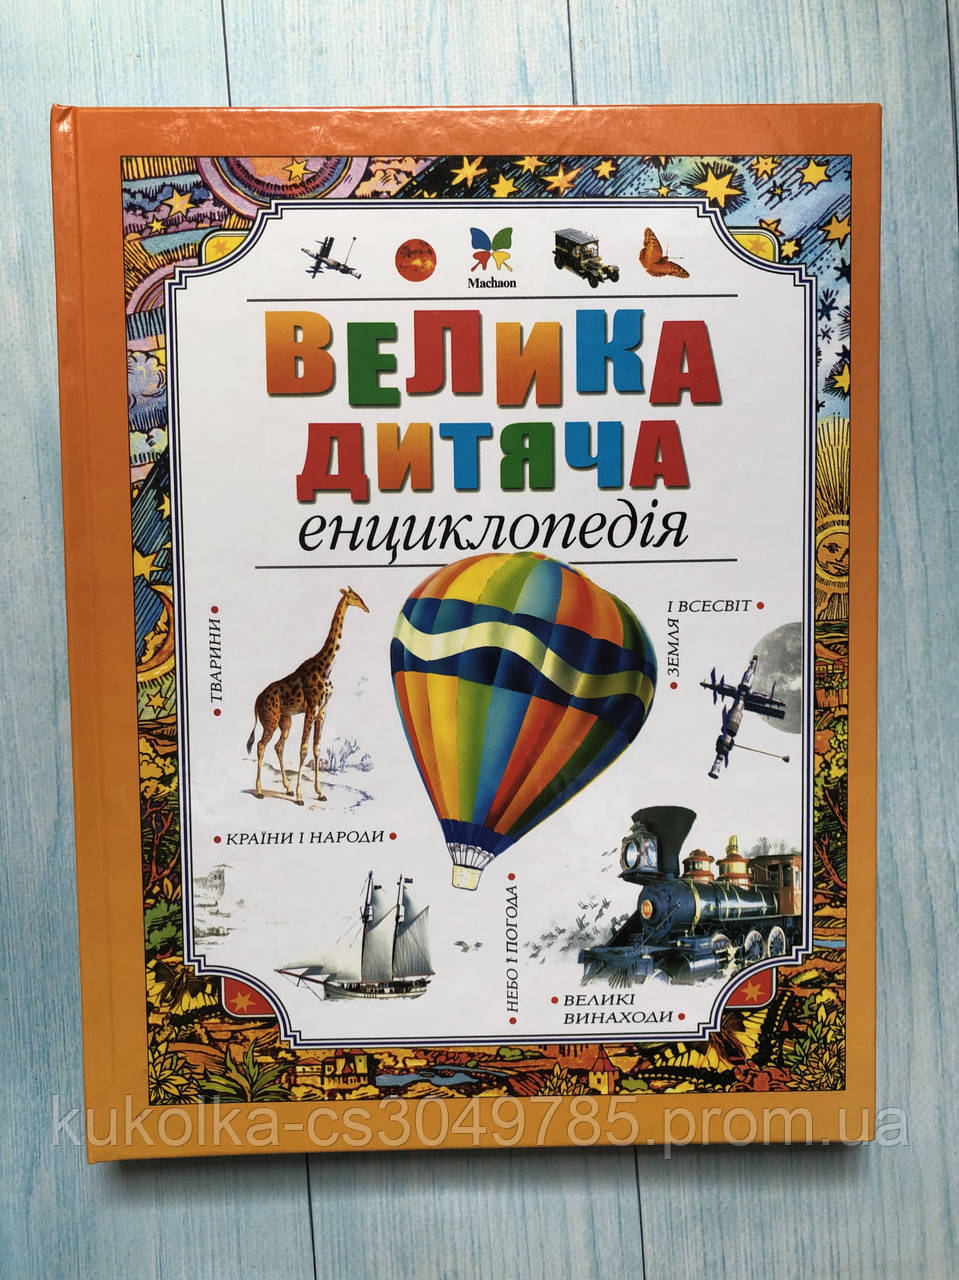 «Велика дитяча енциклопедія» Machaon